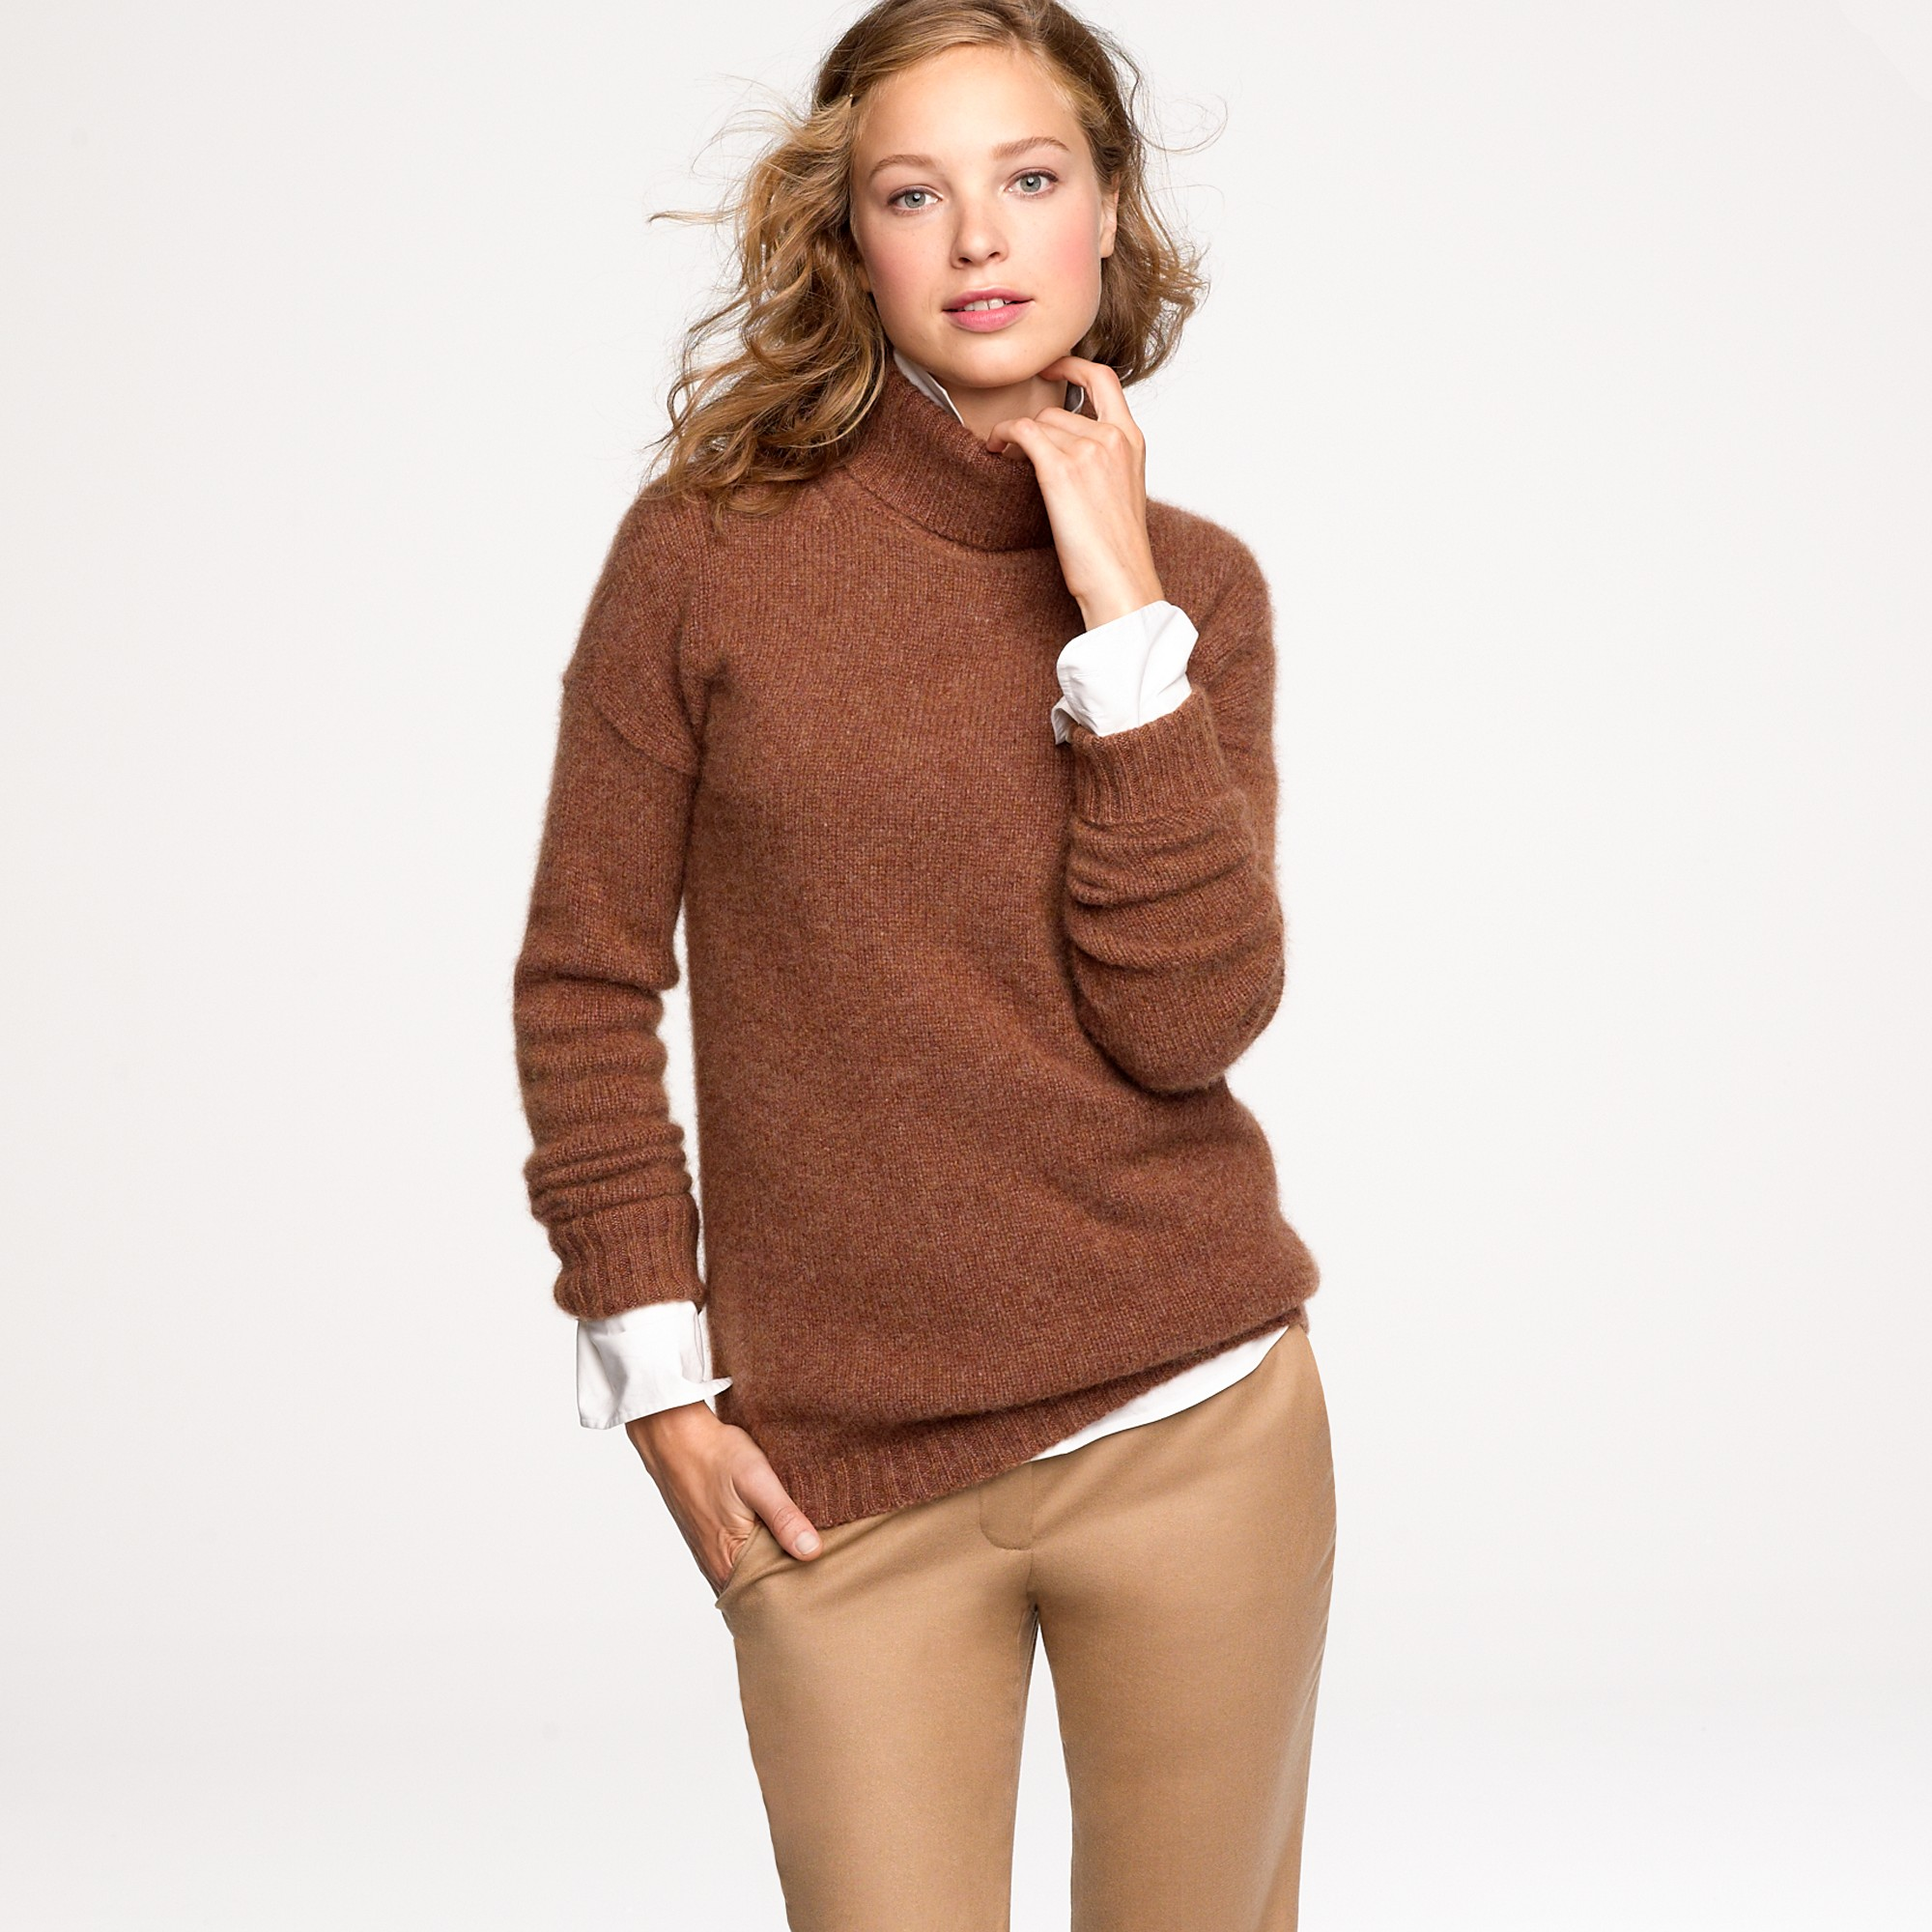 J.crew Cashmere-mohair Turtleneck Sweater in Brown | Lyst